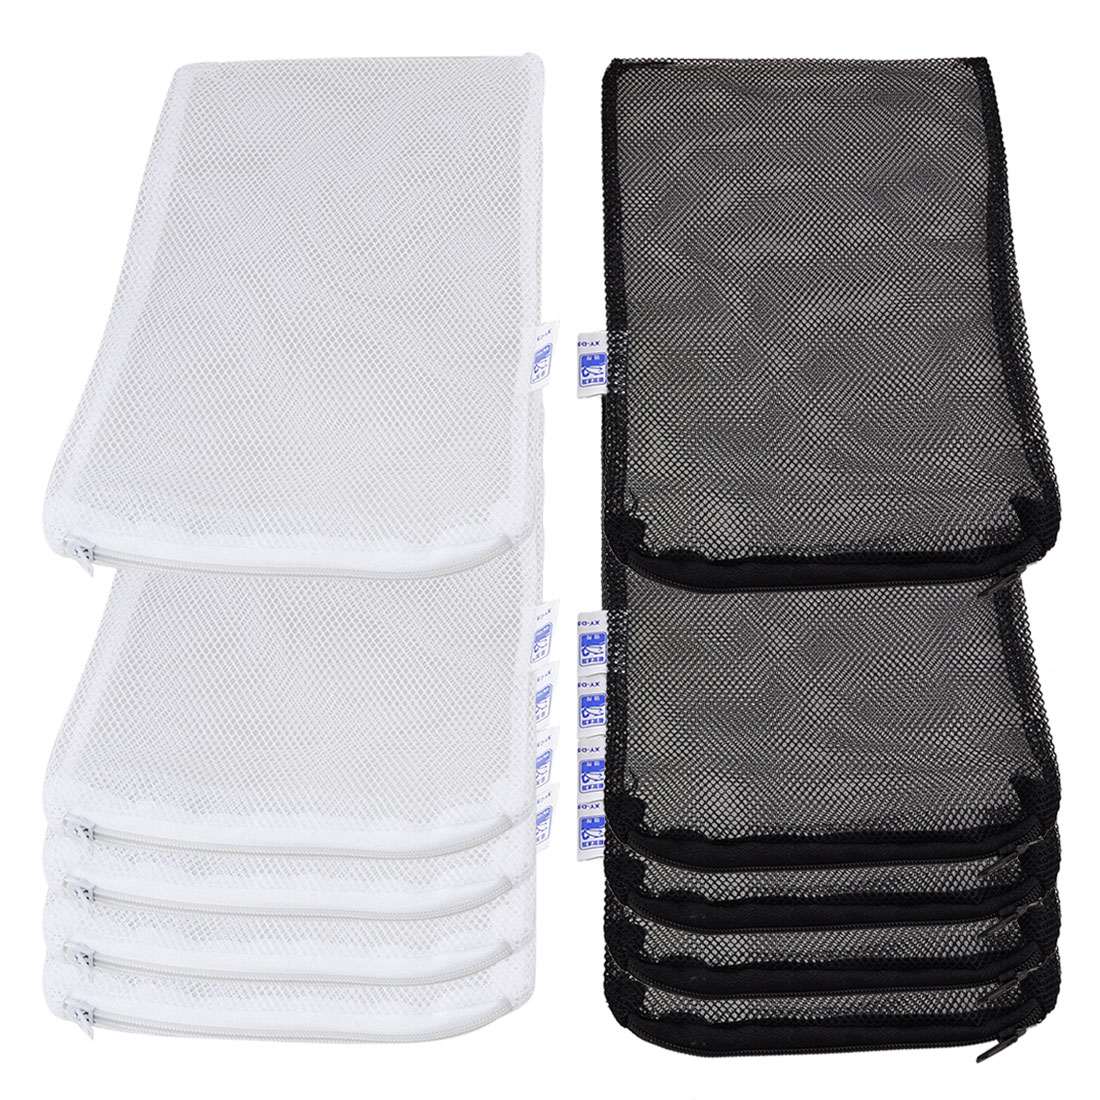 10 Pcs Zippered 210mmx140mm Fishing Isolation Net Bags Black White for Fish Tank